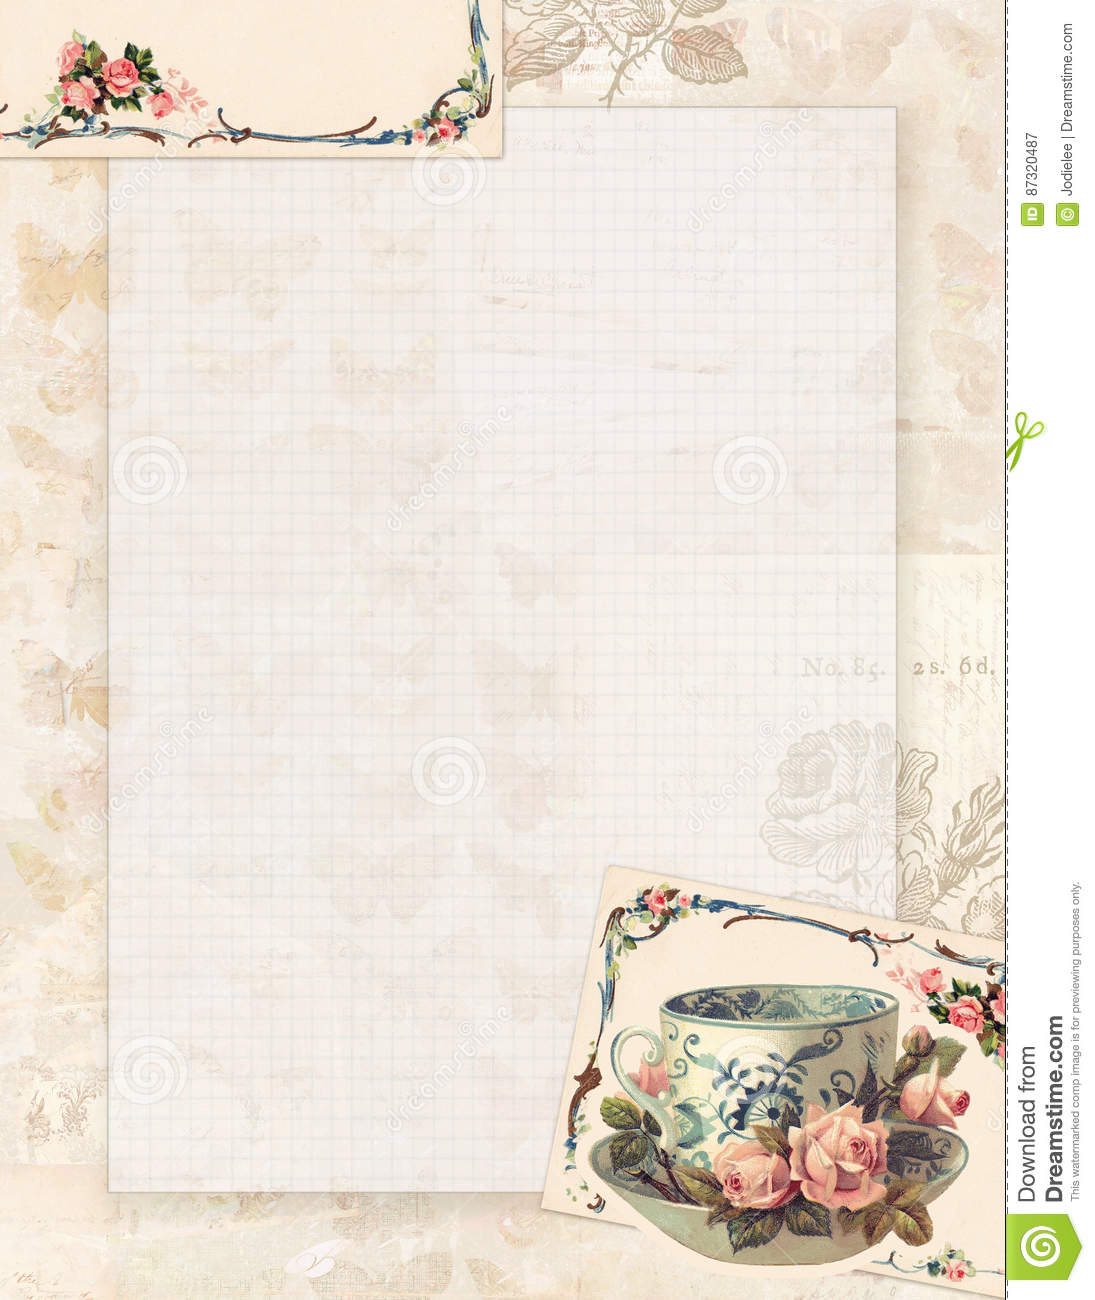 graphic relating to Stationary Printable known as Printable Classic Shabby Stylish Design and style Teacup And Roses